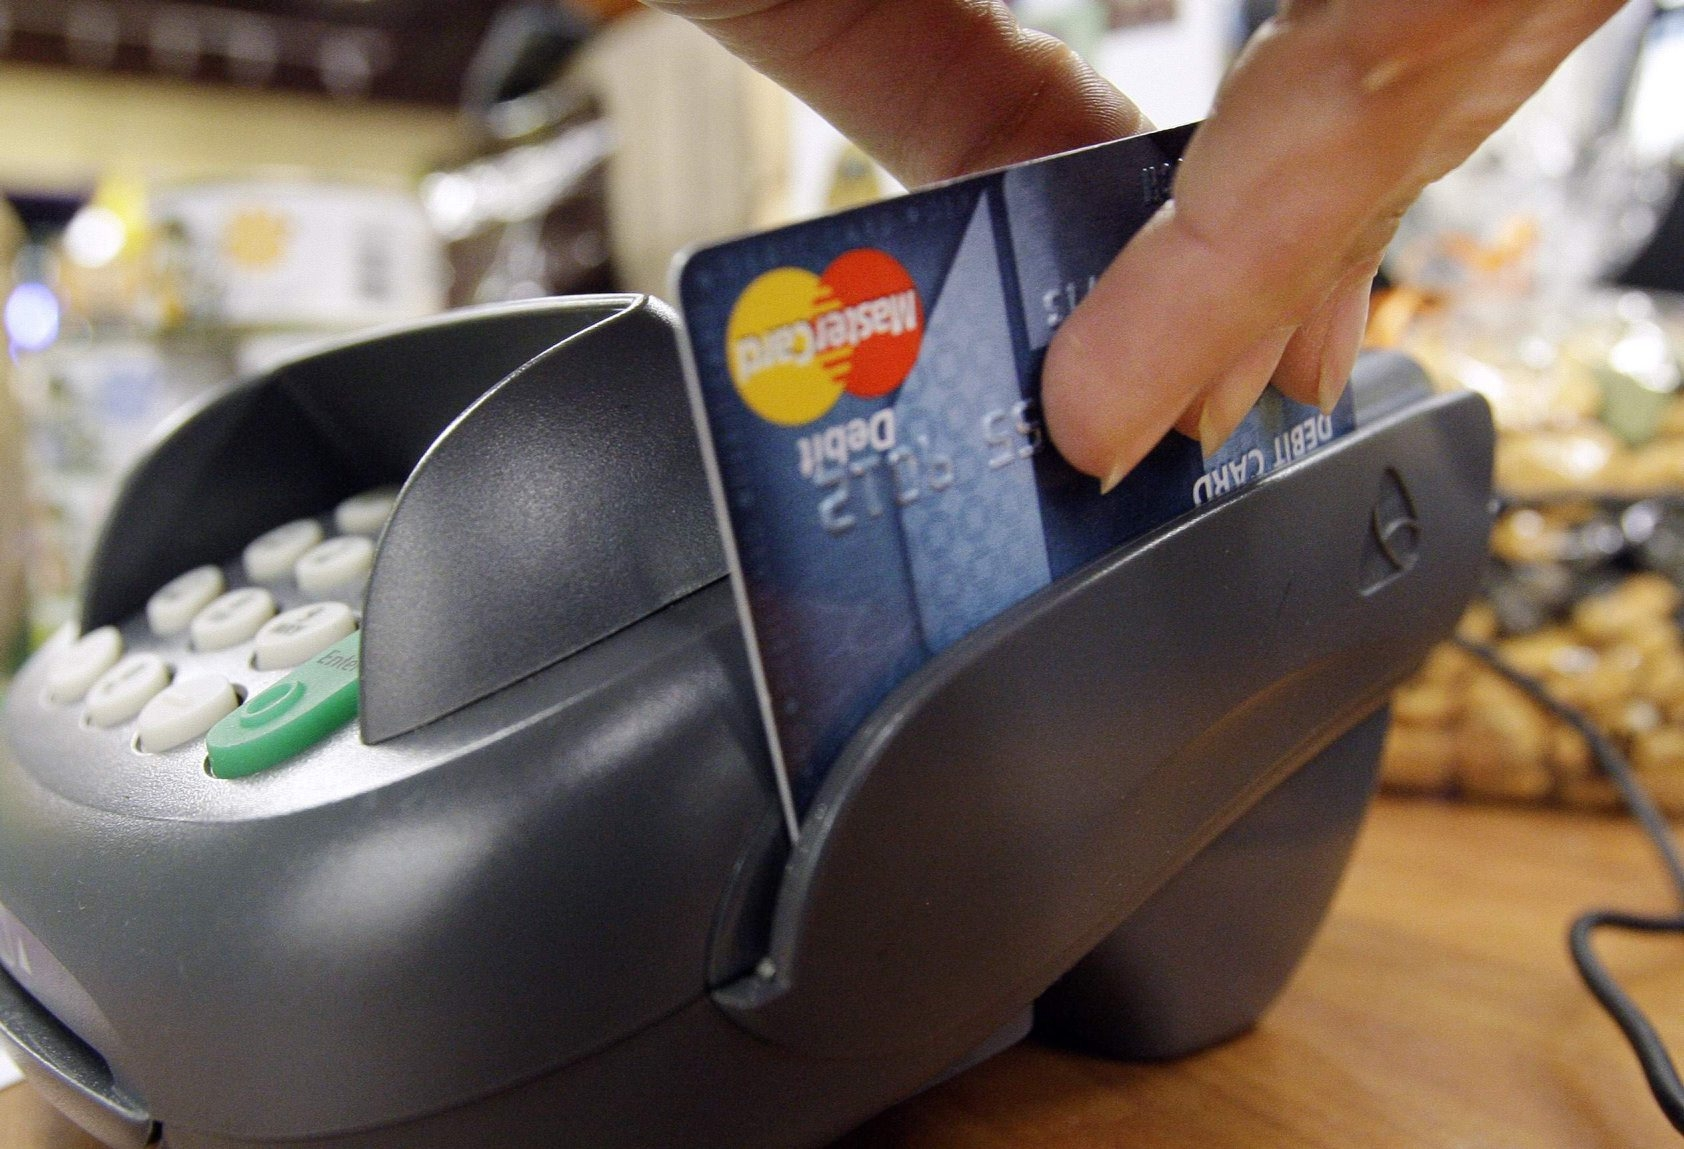 Merchants pay higher fees when customers use credit cards, so want to use surcharges to deter customers from using credit cards.